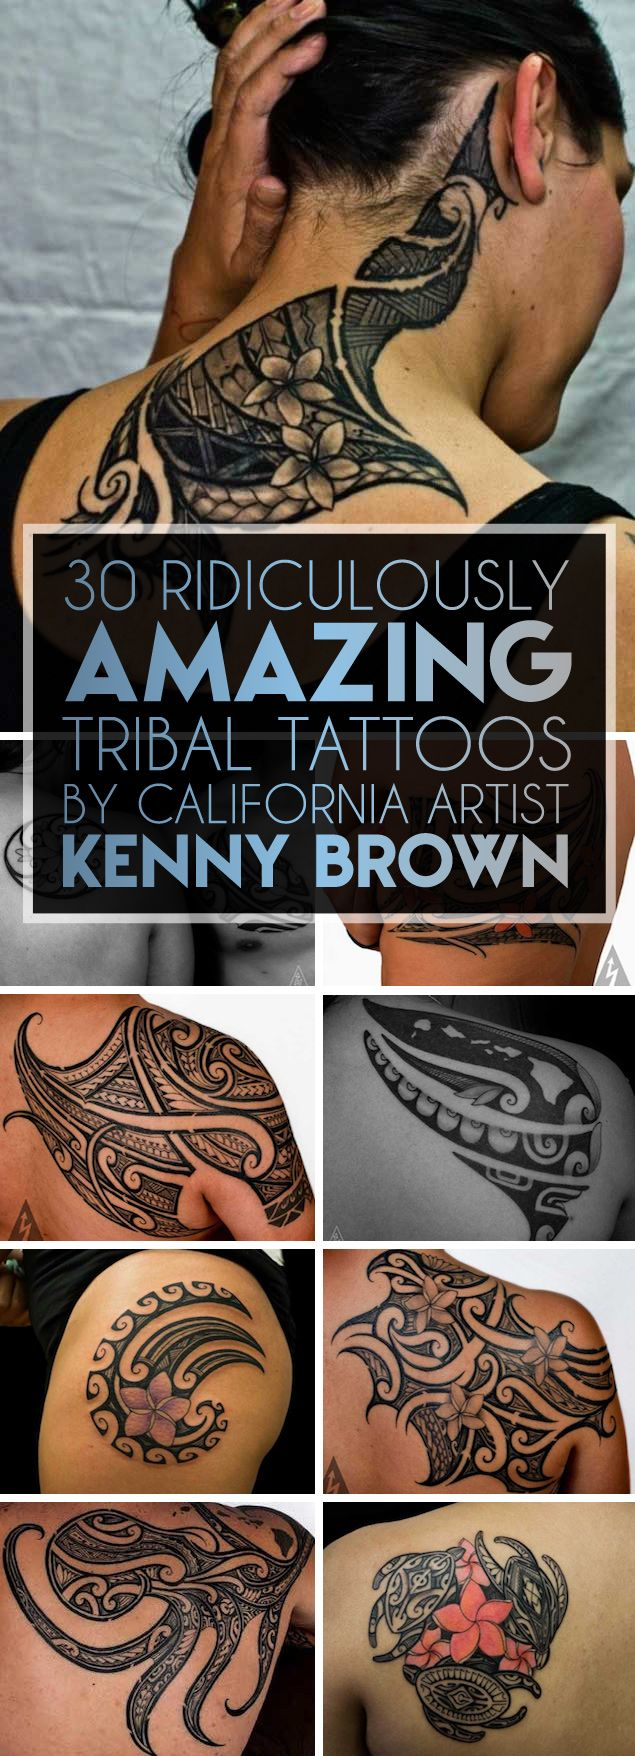 Must See Tribal Tattoos by California Artist Kenny Brown